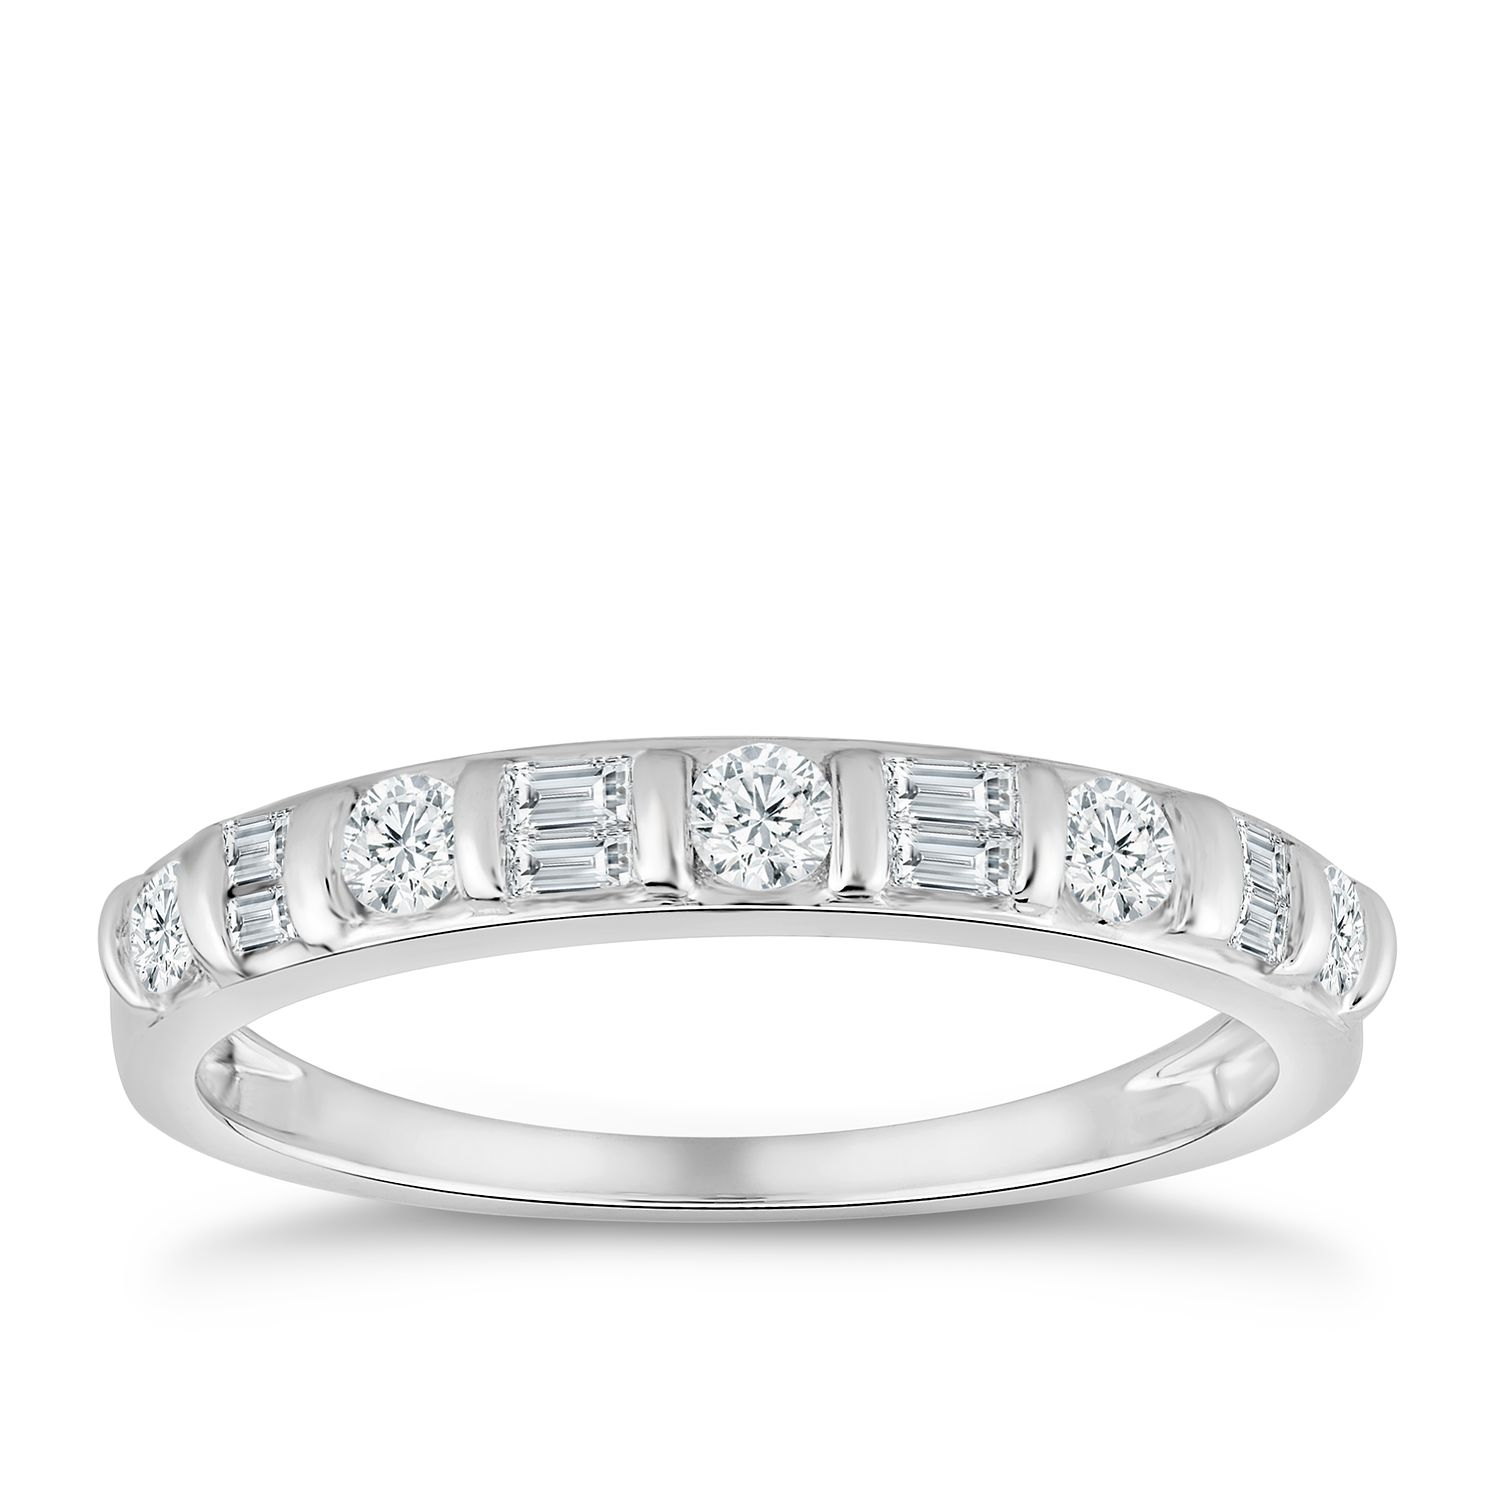 9ct White Gold 1/3ct Diamond Mix-Cut Eternity Ring - Product number 4890213